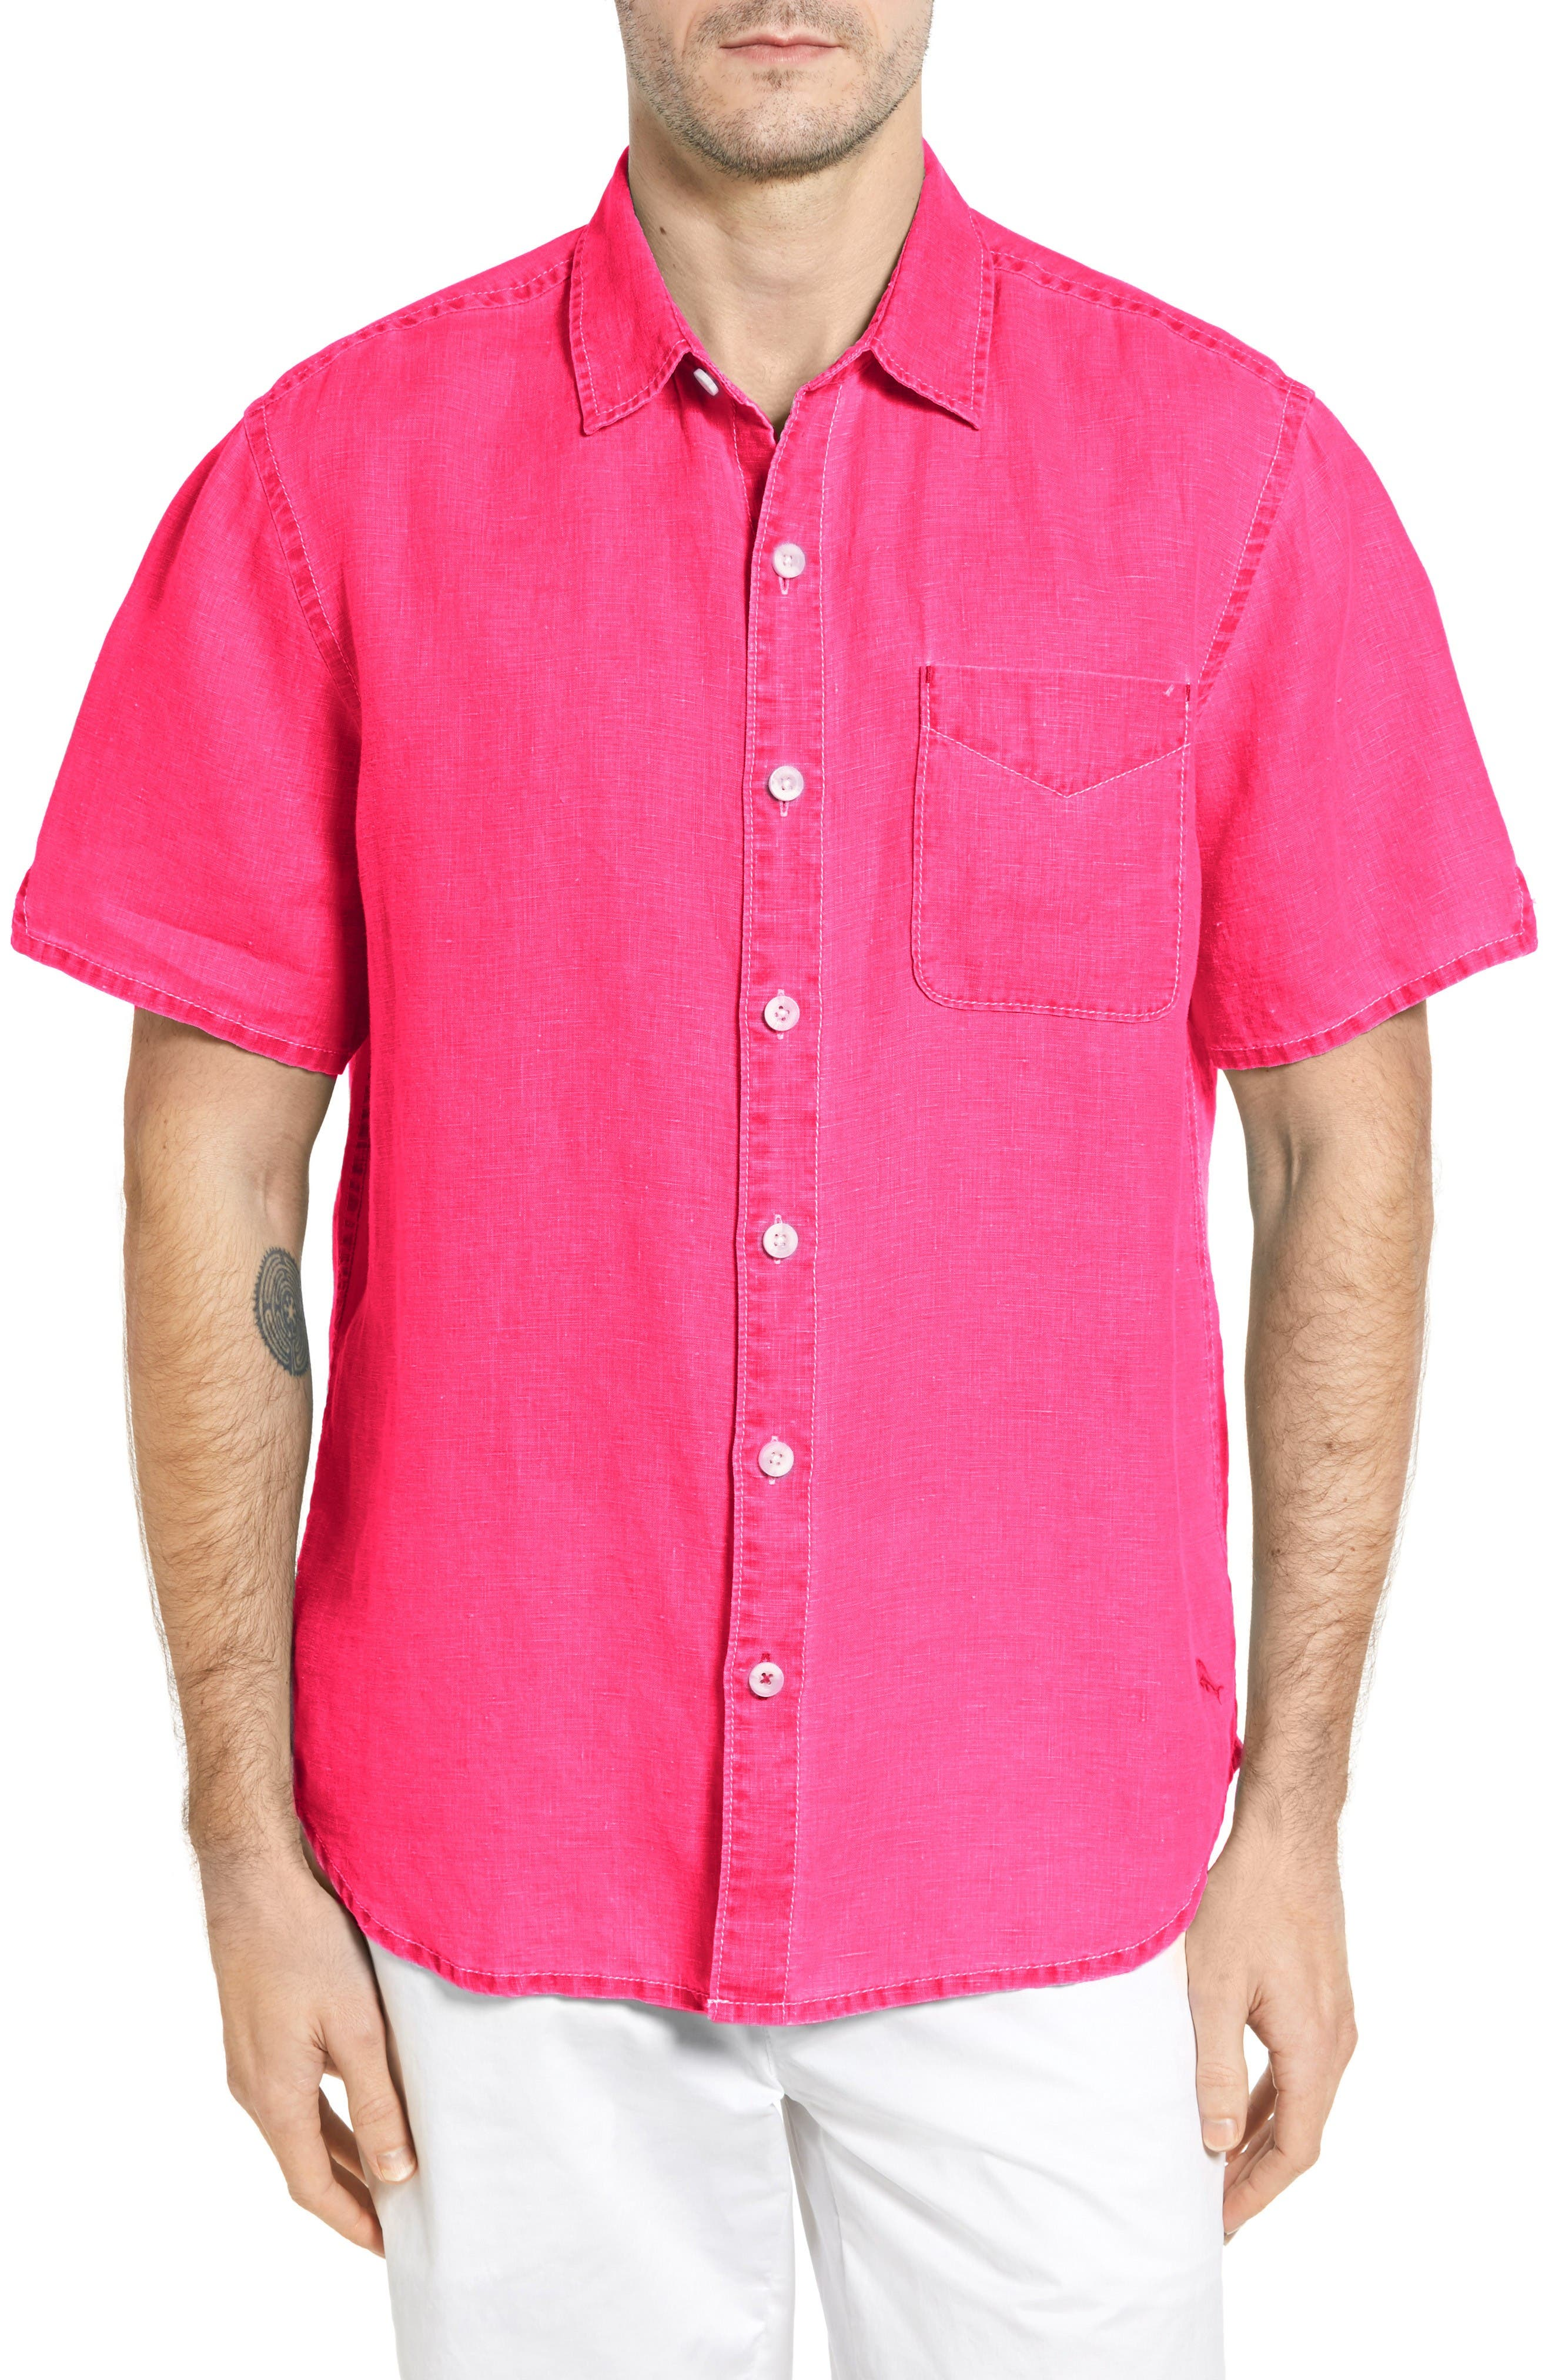 'Sea Glass Breezer' Original Fit Short Sleeve Linen Shirt,                         Main,                         color, Raspberry Sorbet